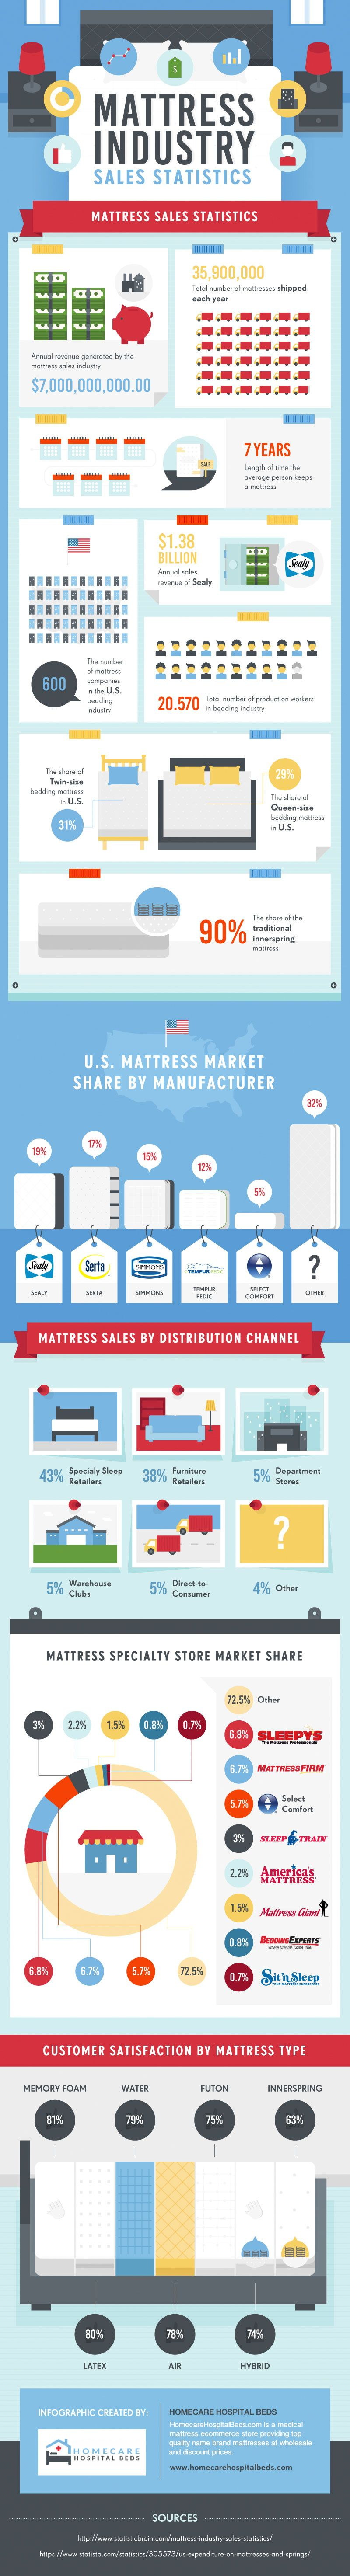 Mattress Industry Sales Statistics #Infographic